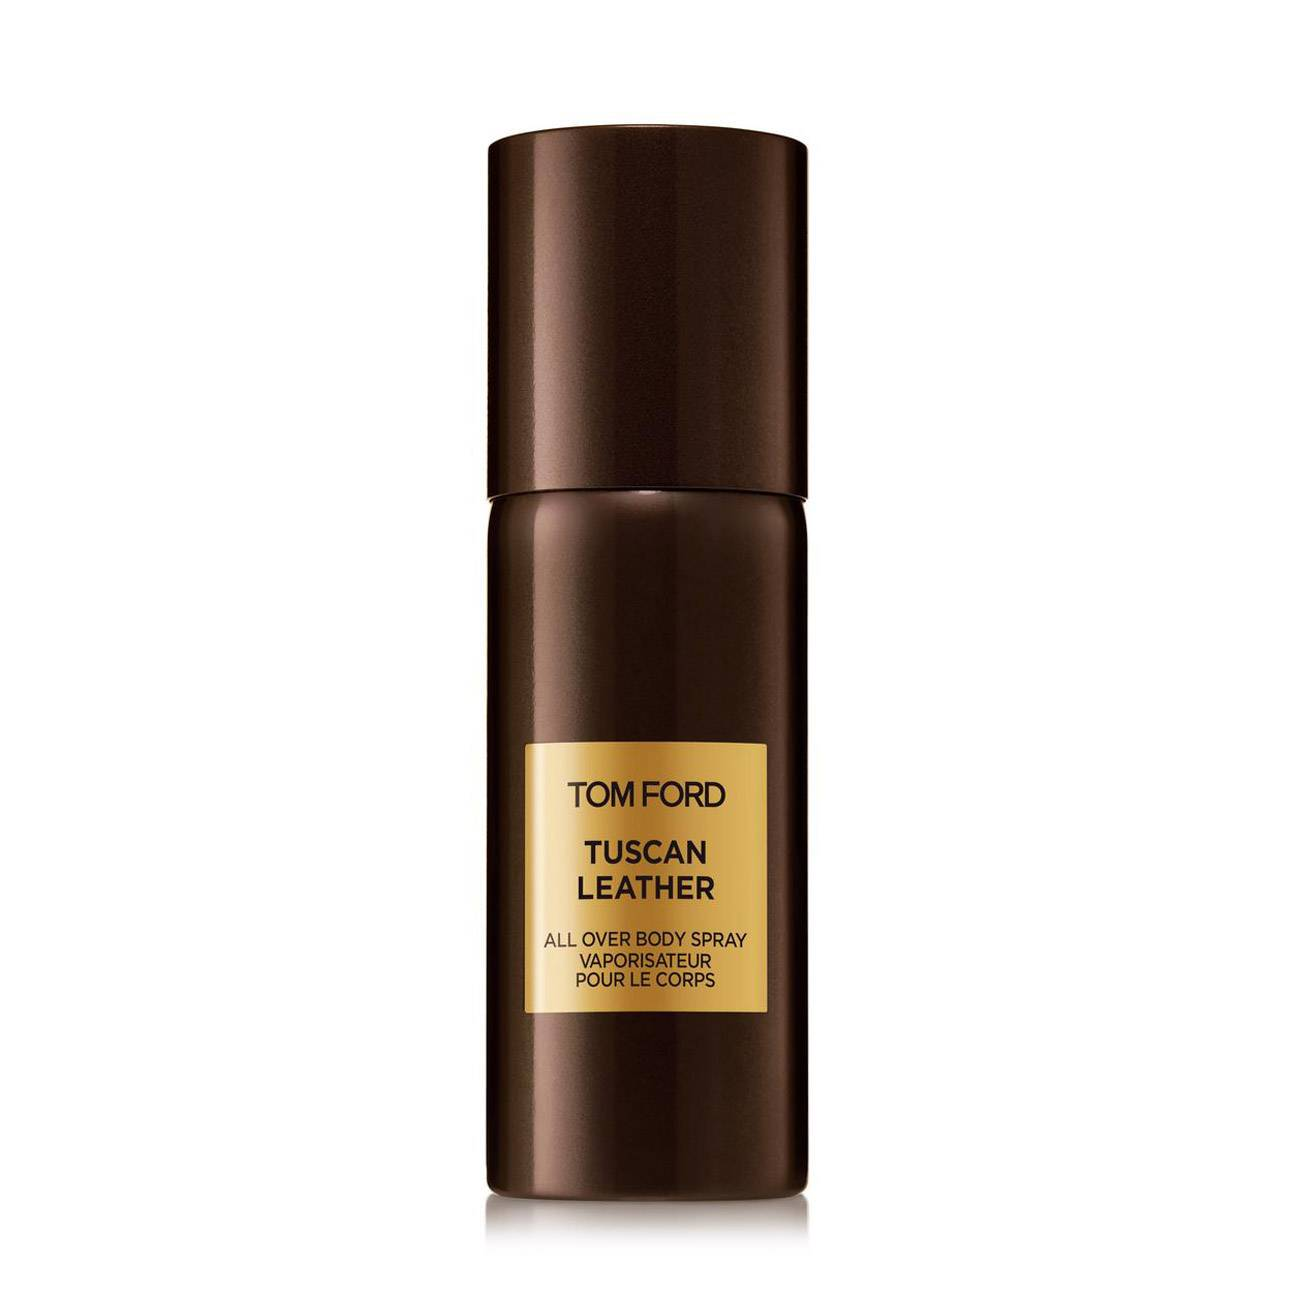 TUSCAN LEATHER ALL OVER BODY SPRAY 150 ML